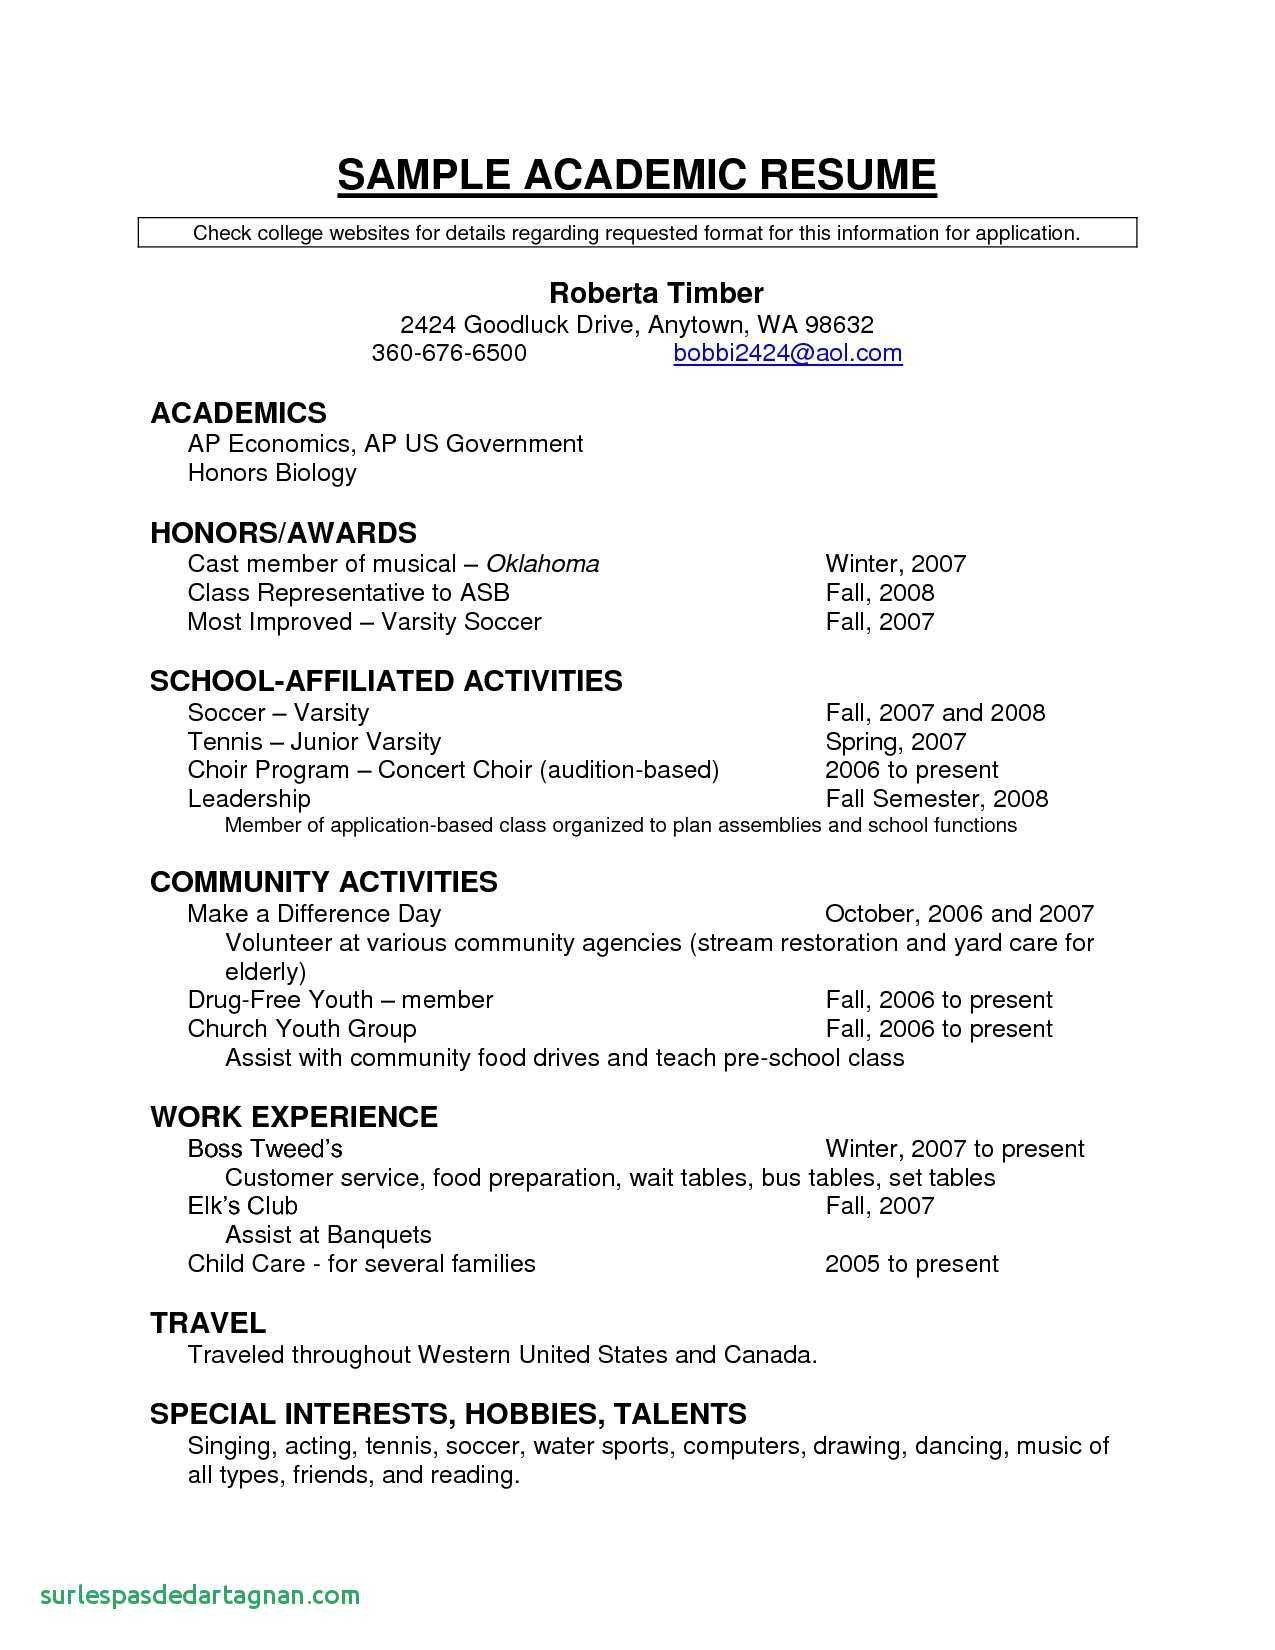 Massage Resume Template - Good Resume Examples New Unique Resume for Highschool Students